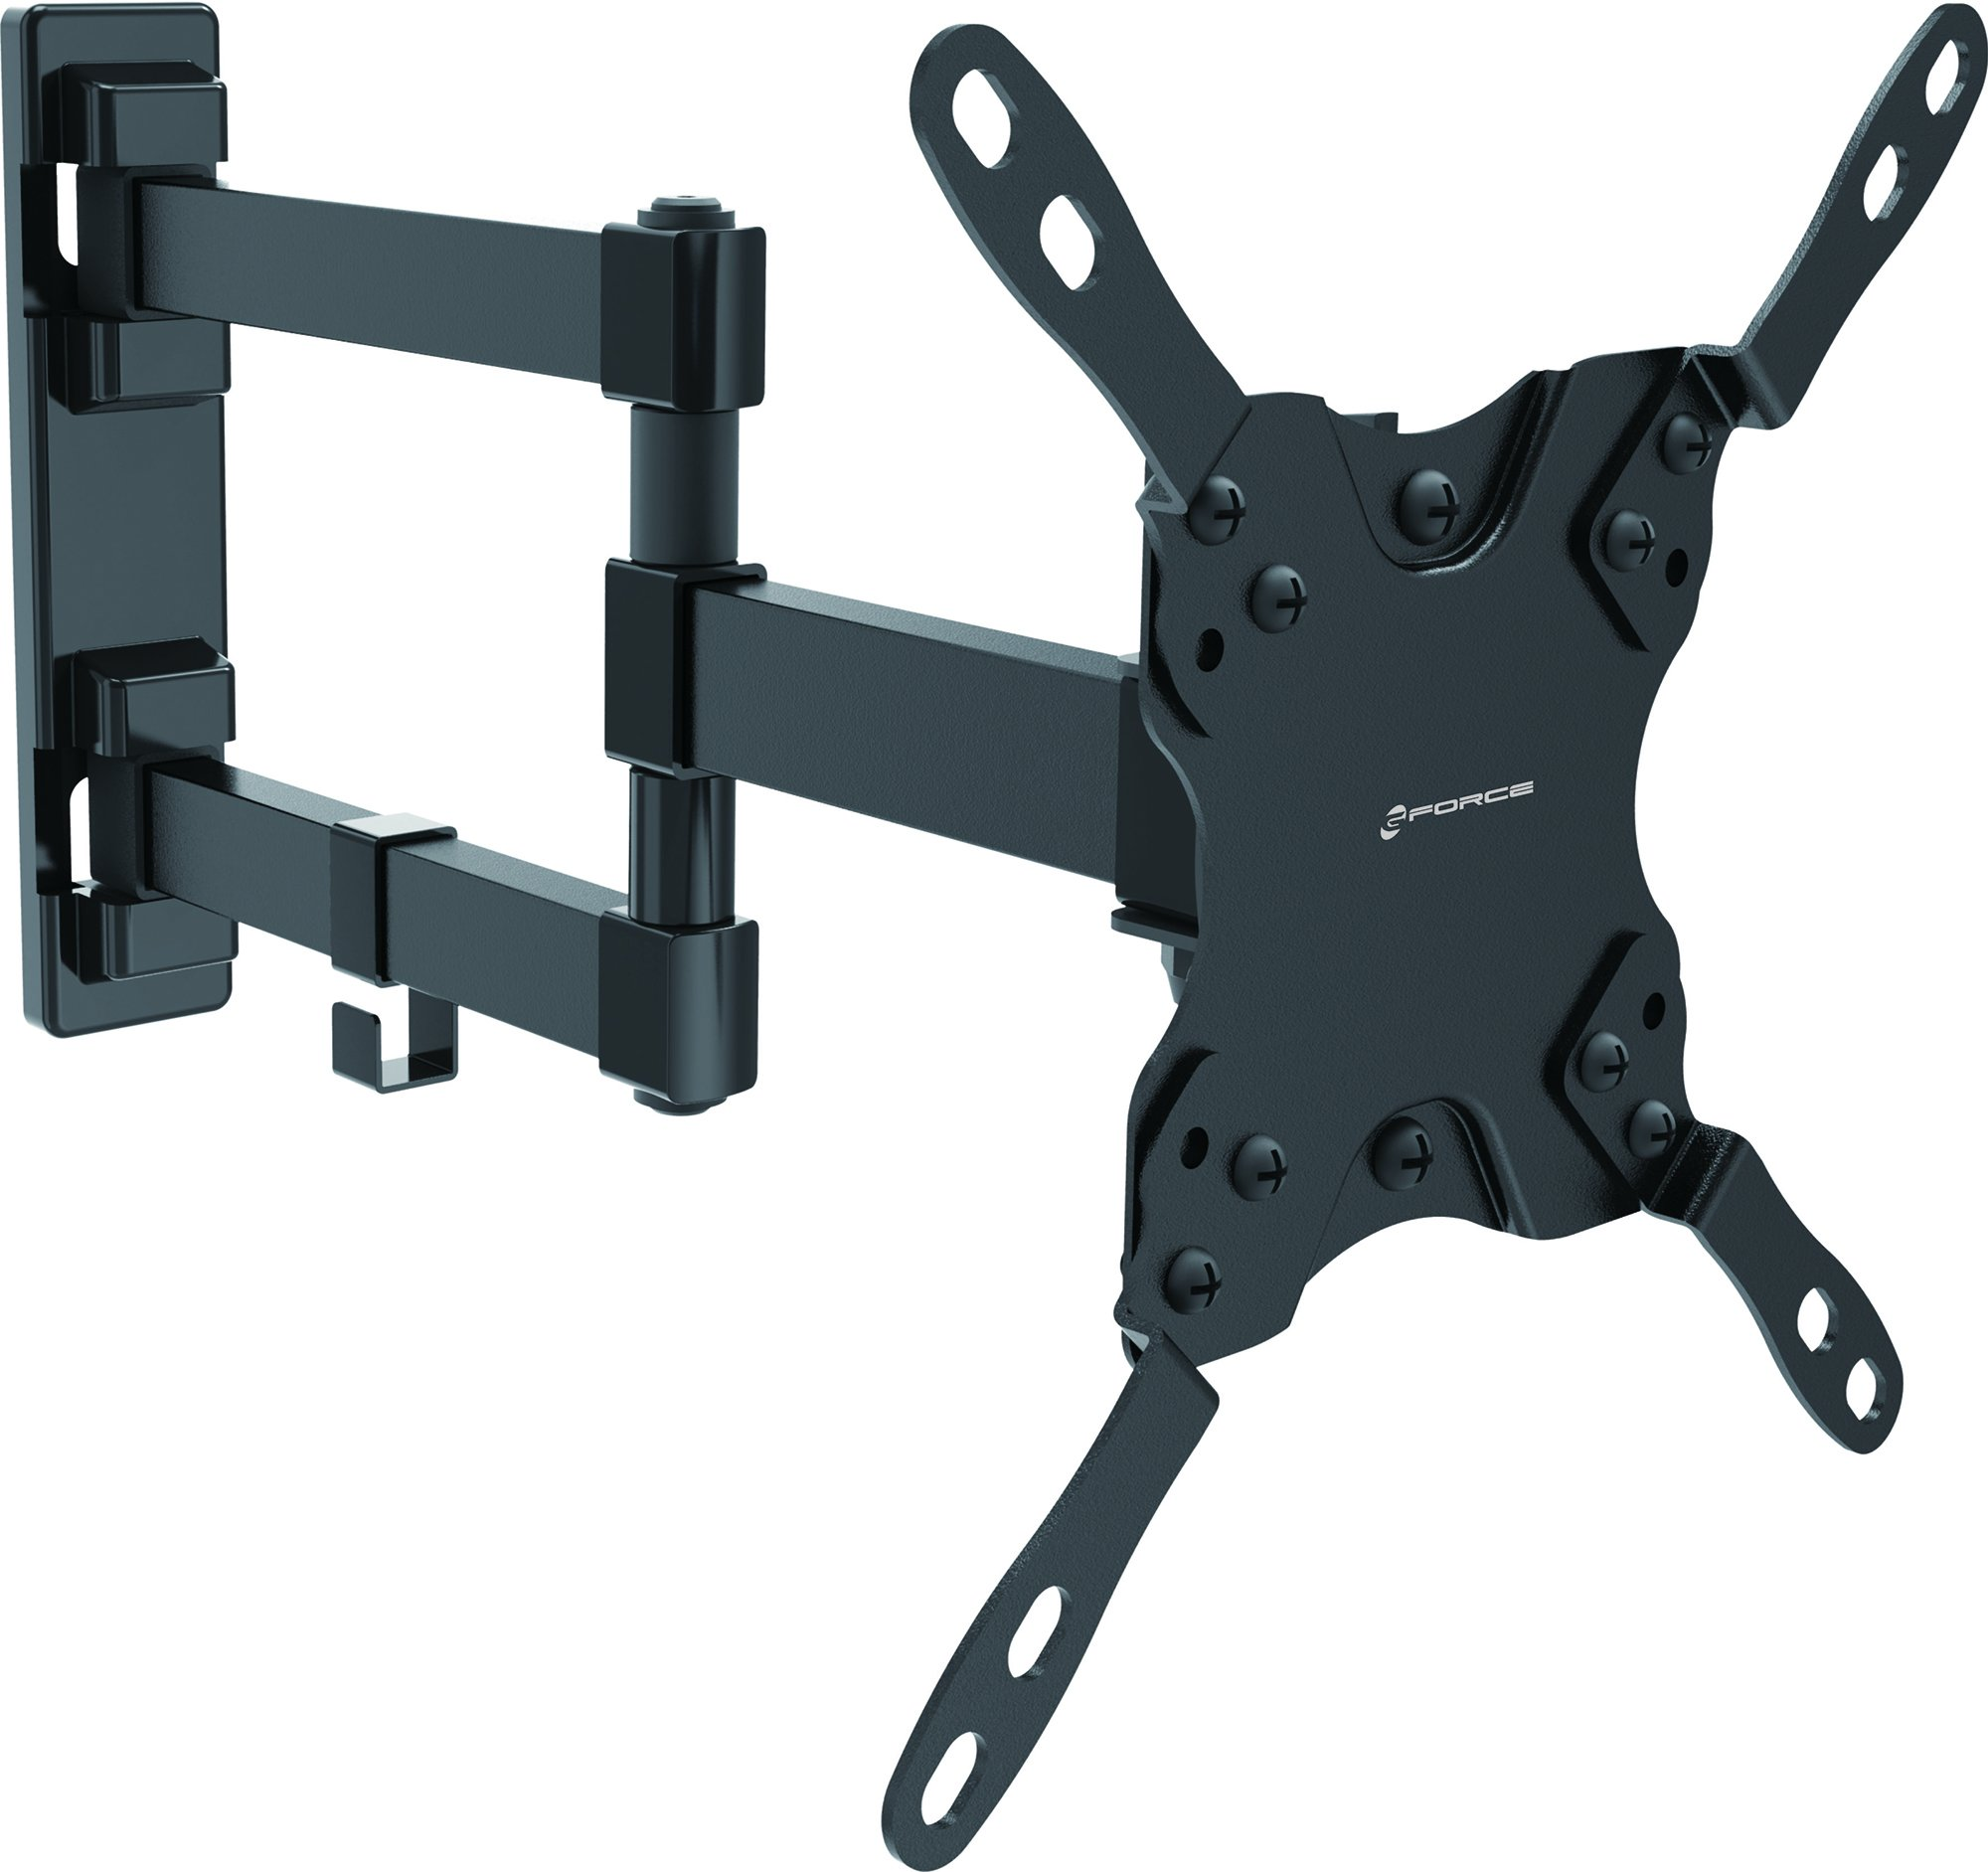 GForce Full Motion TV Wall Mount for Most 13'' - 42'' Inch LED, LCD and Plasma TVs - VESA Compatible - 20Kg/44LBS Weight Capacity - Black by GForce